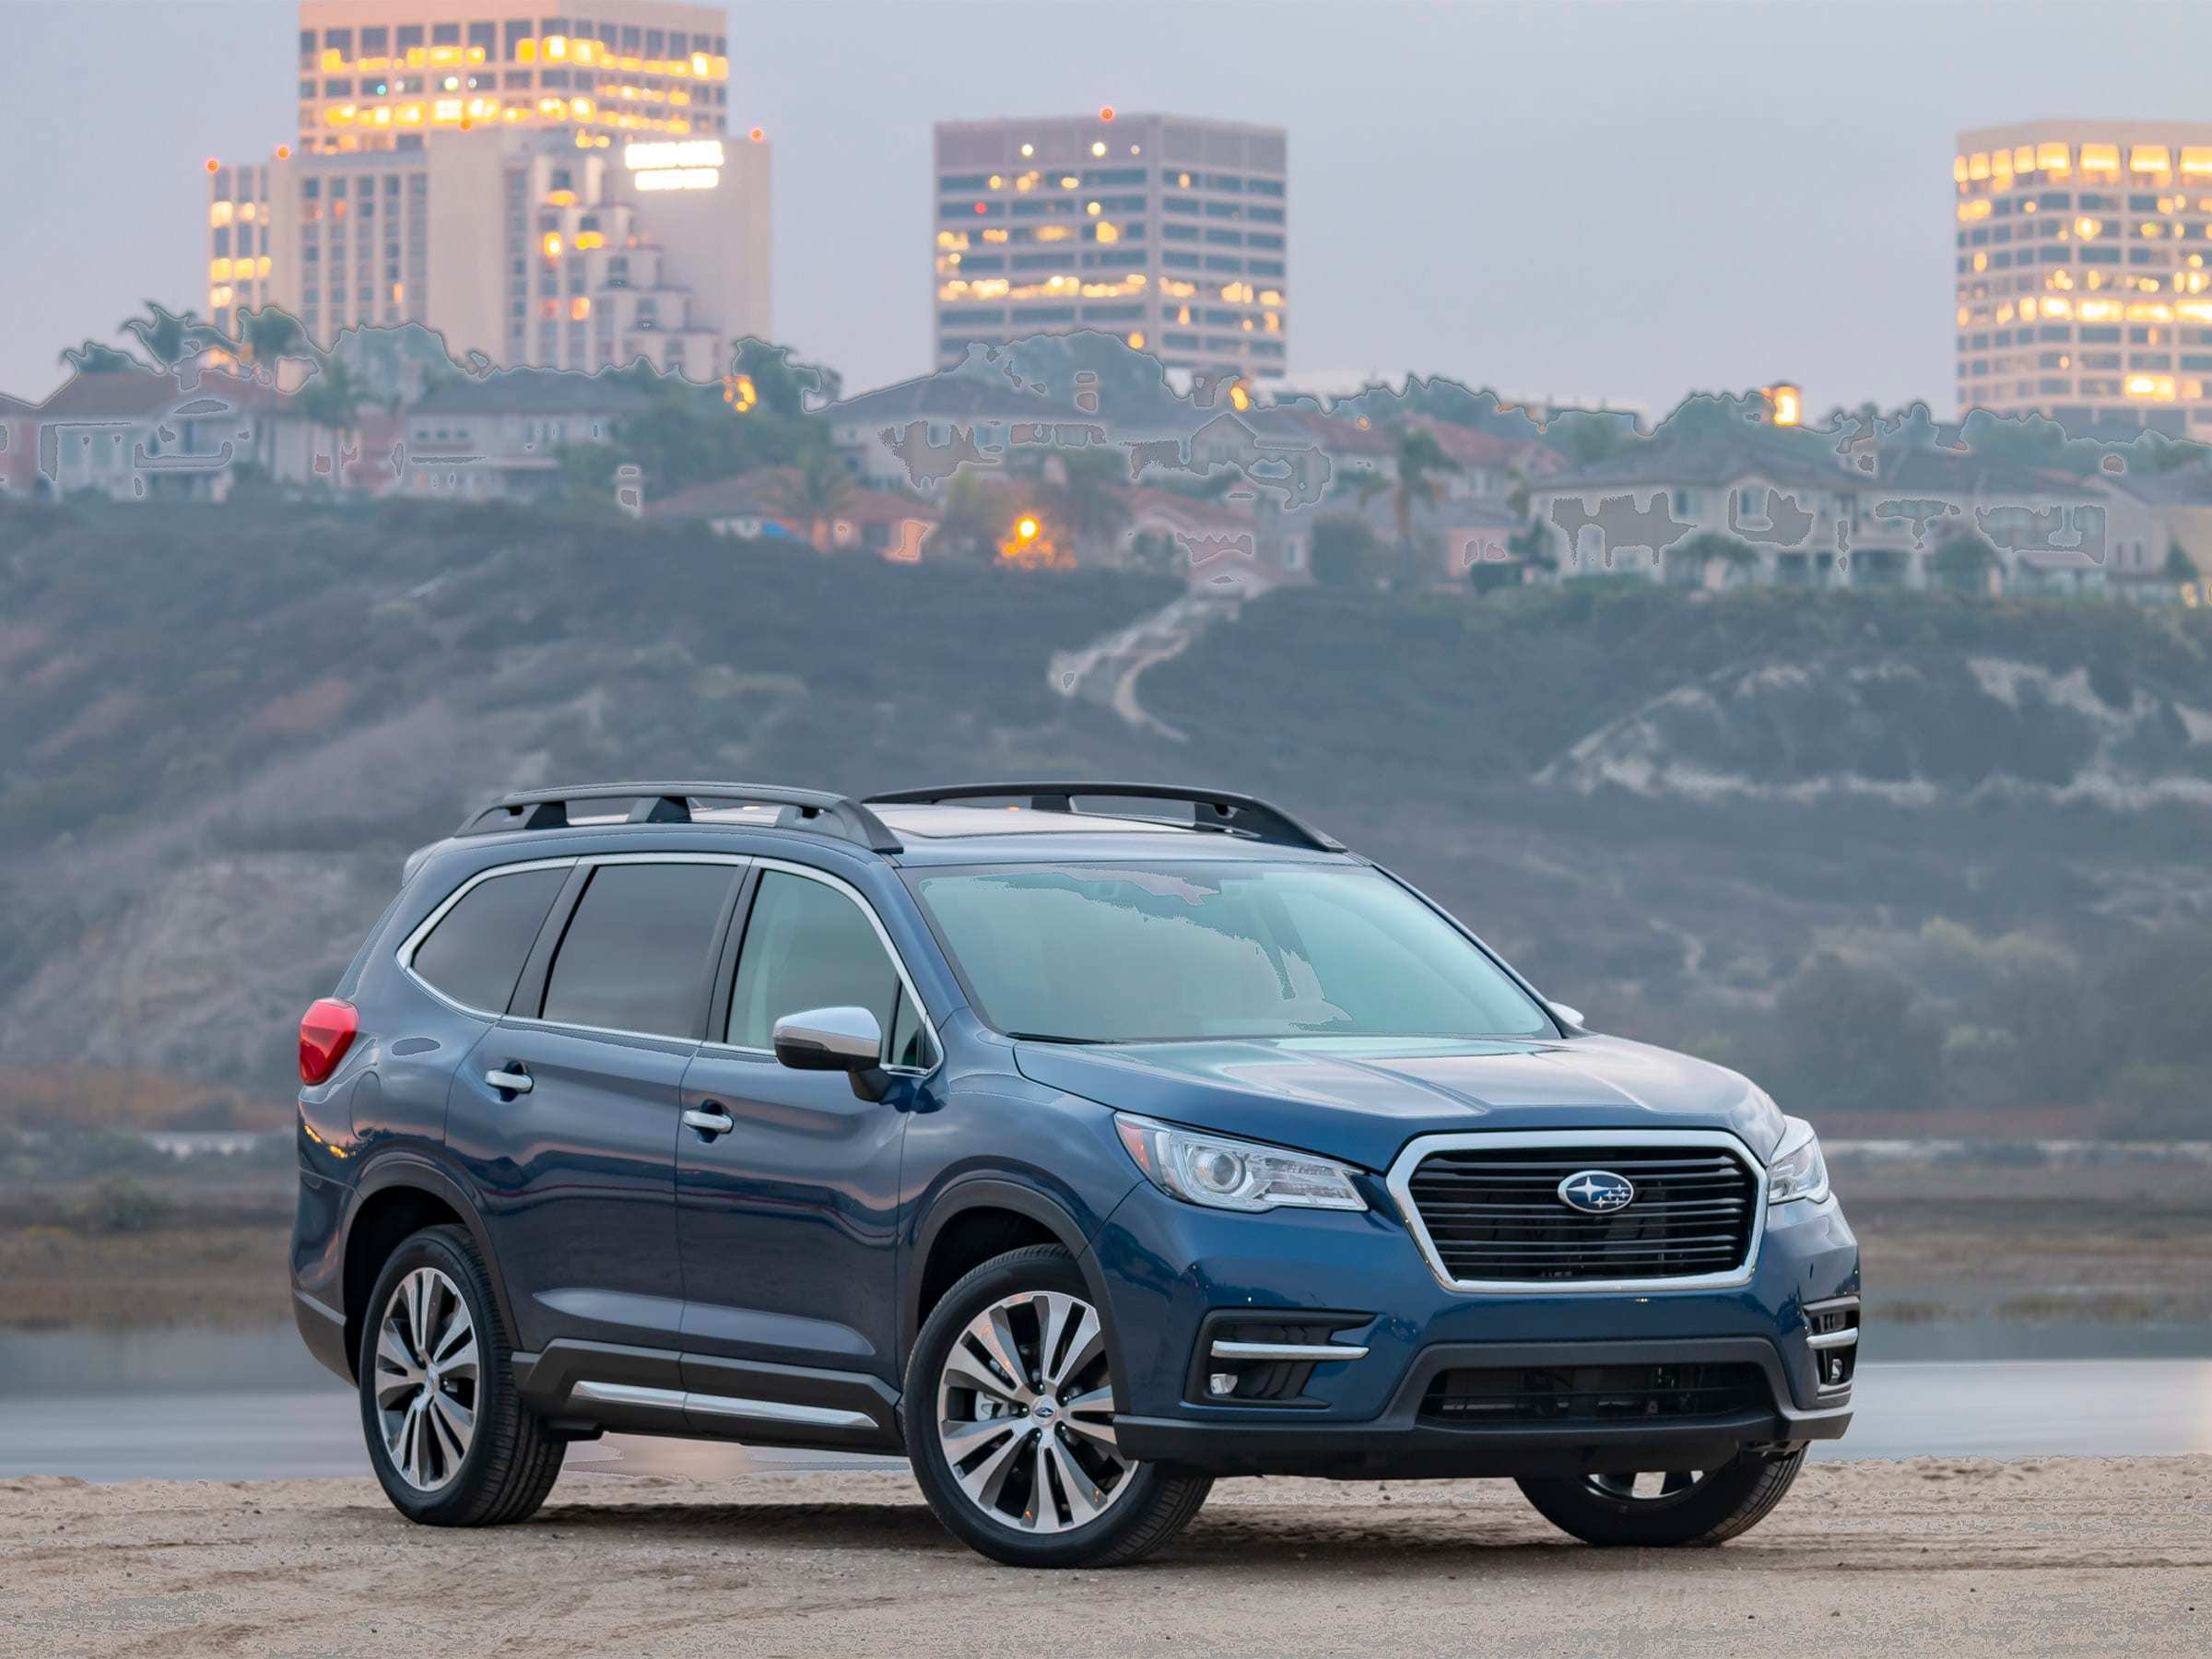 64 Great 2019 Subaru Ascent Video Price and Review by 2019 Subaru Ascent Video